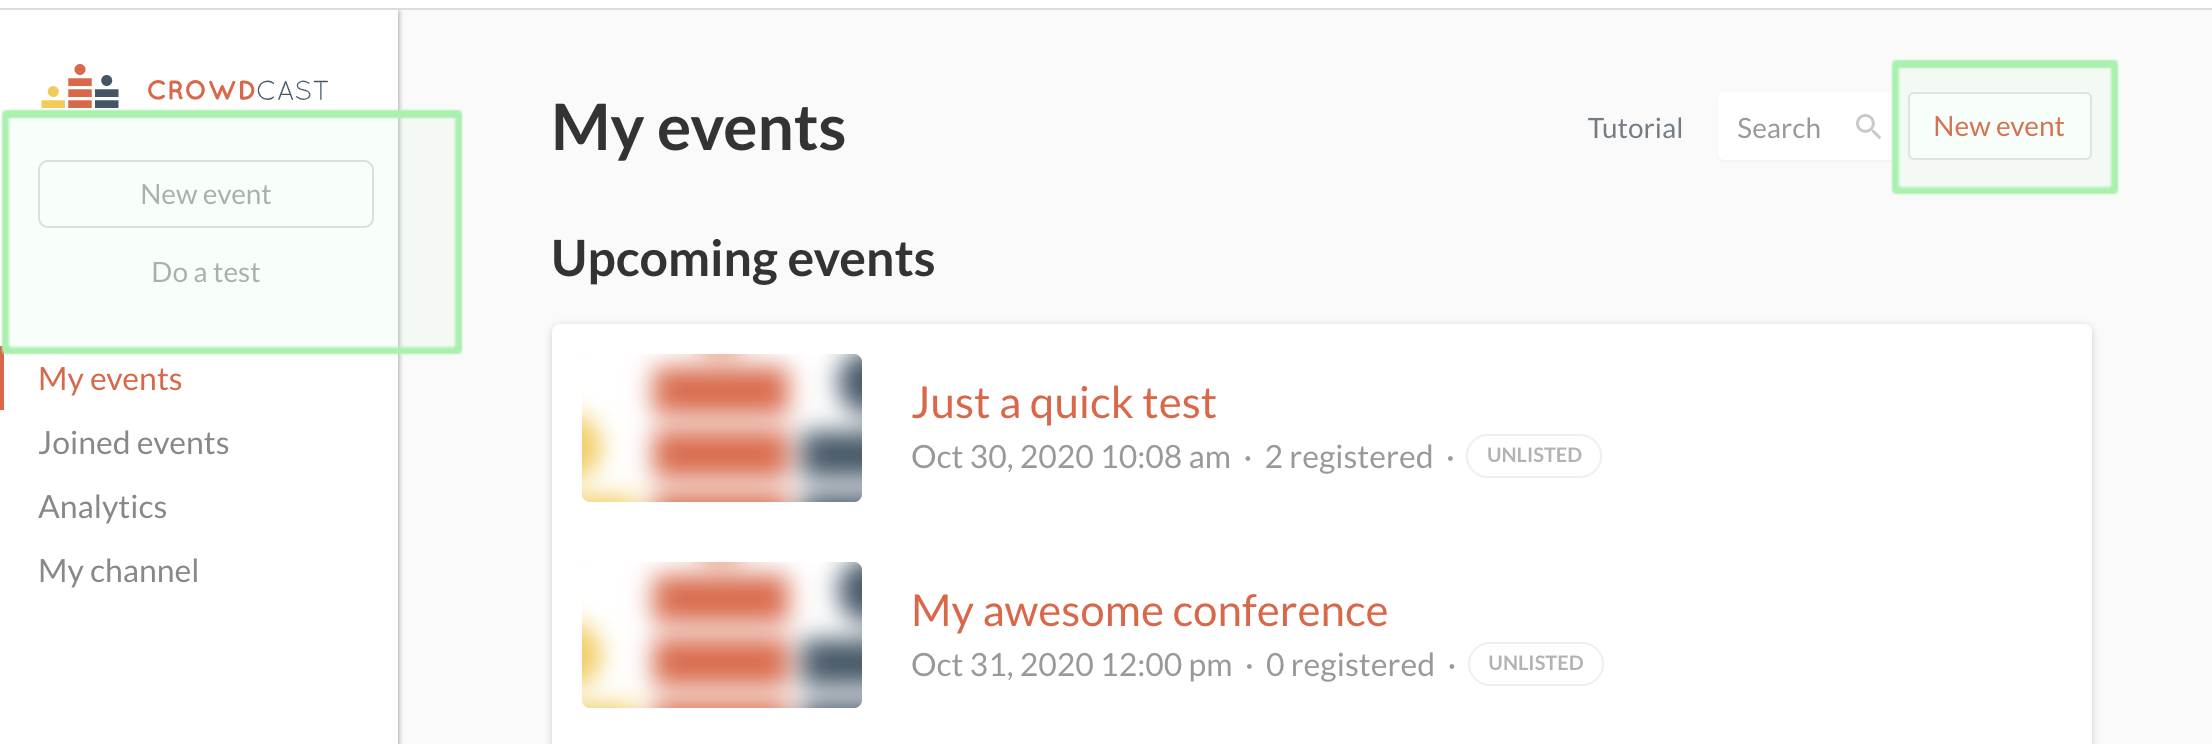 Photo of host dashboard with new event in top right hand side circles and new event within expended left hand side bar circled